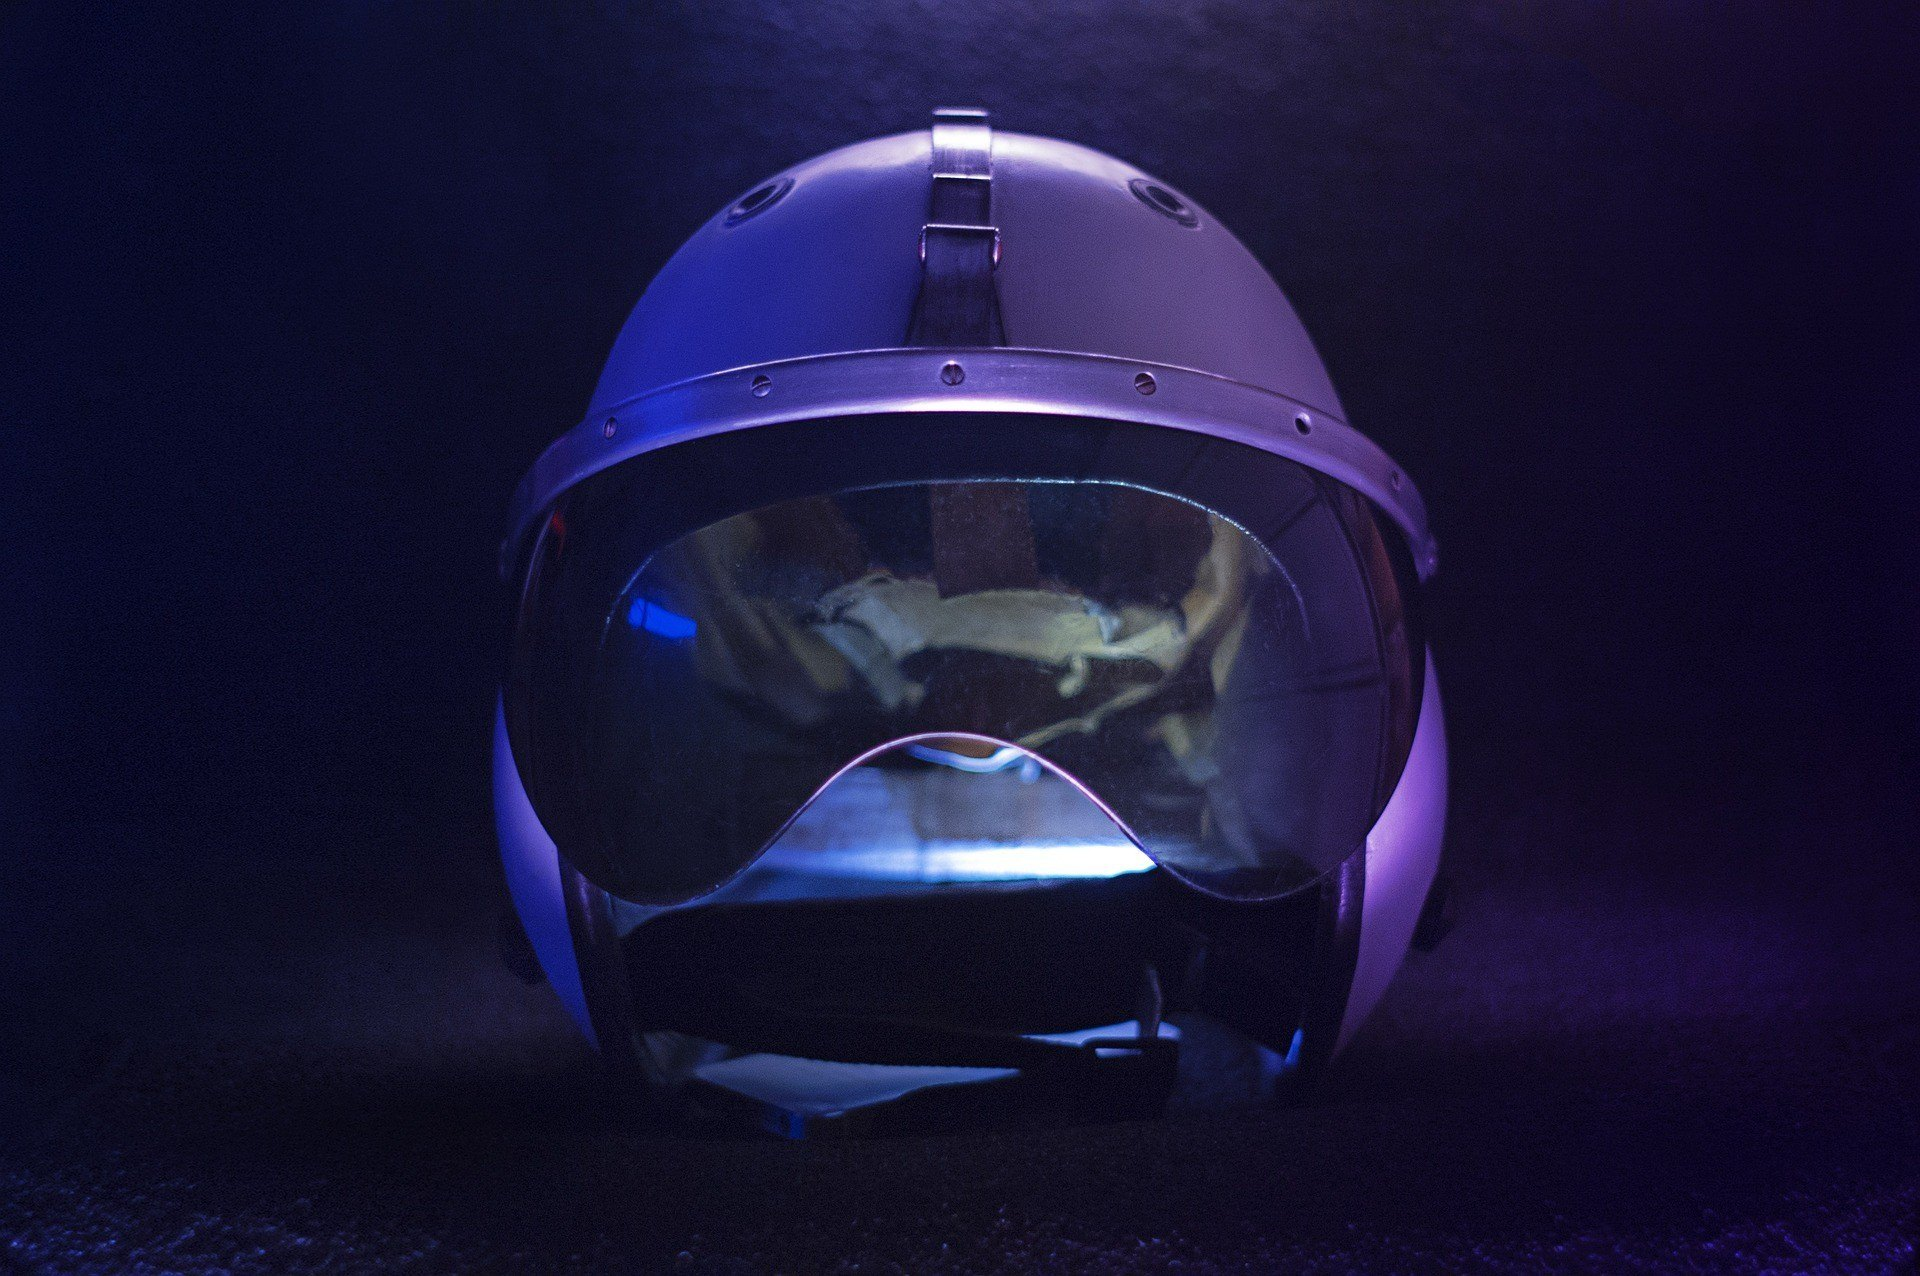 Bluetooth Motorcycle Helmets Top 10 Reviewed